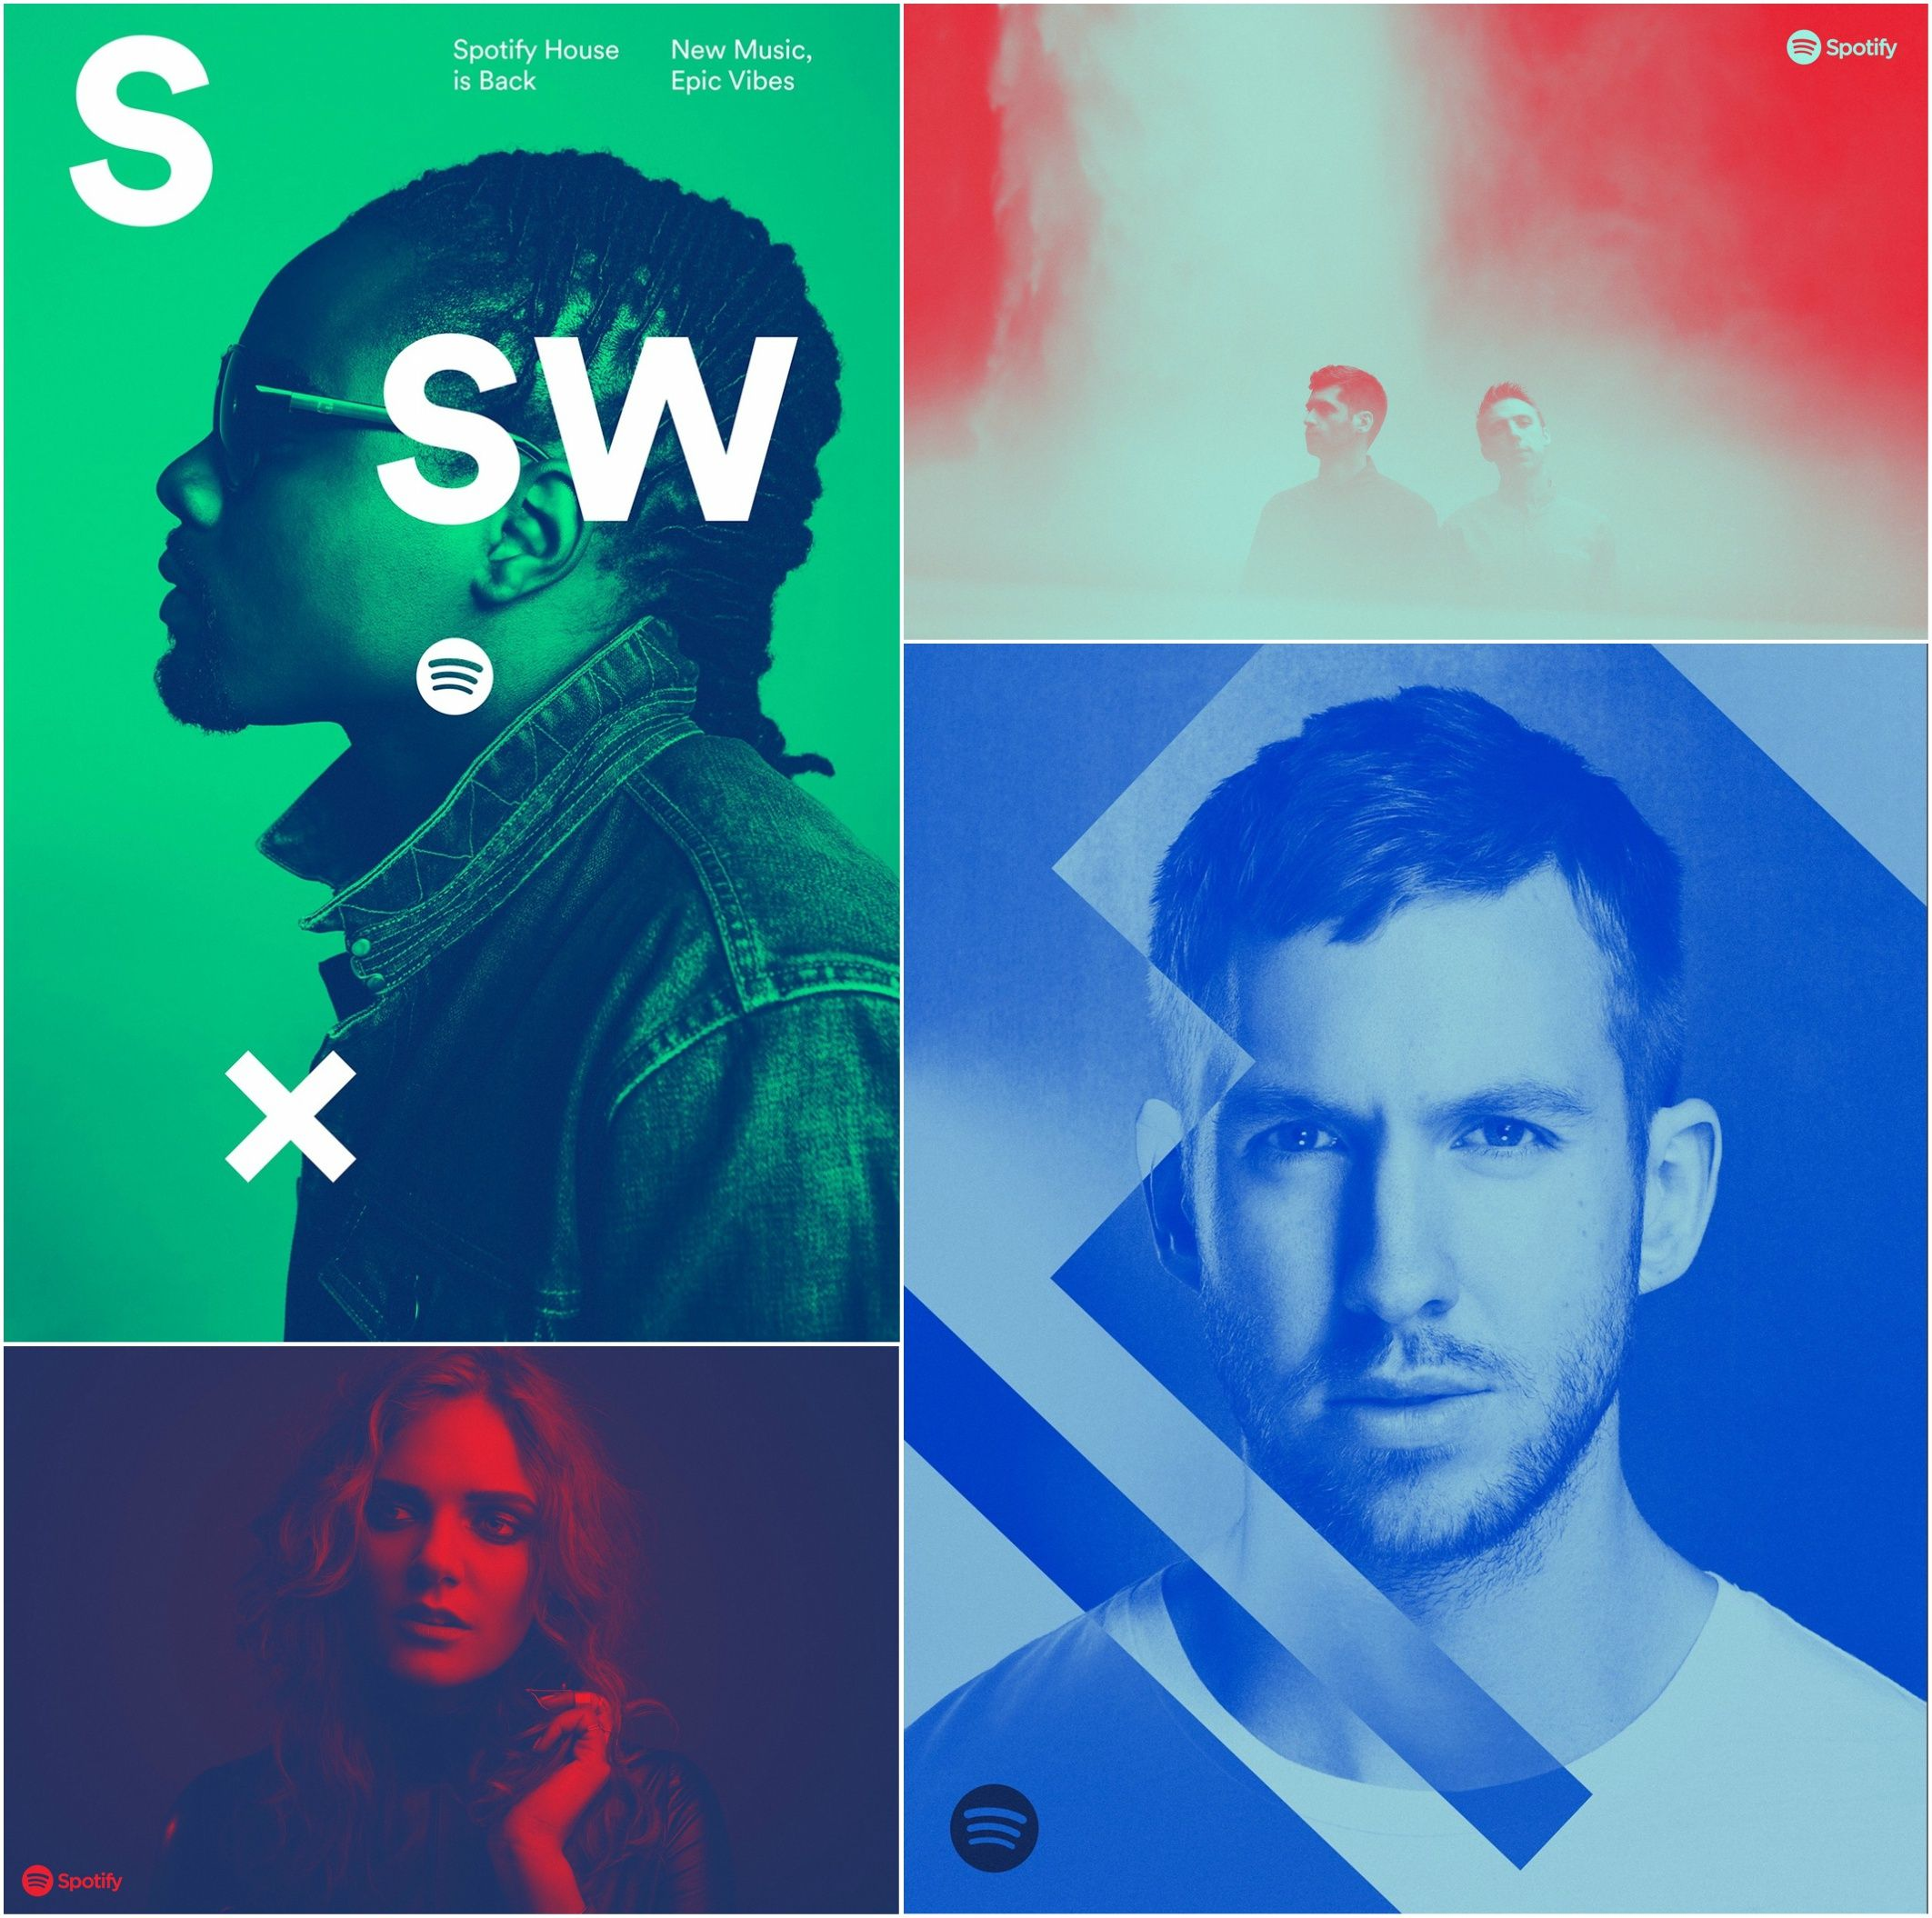 8 New Graphic Design Trends That Will Take Over 2017 - Venngage